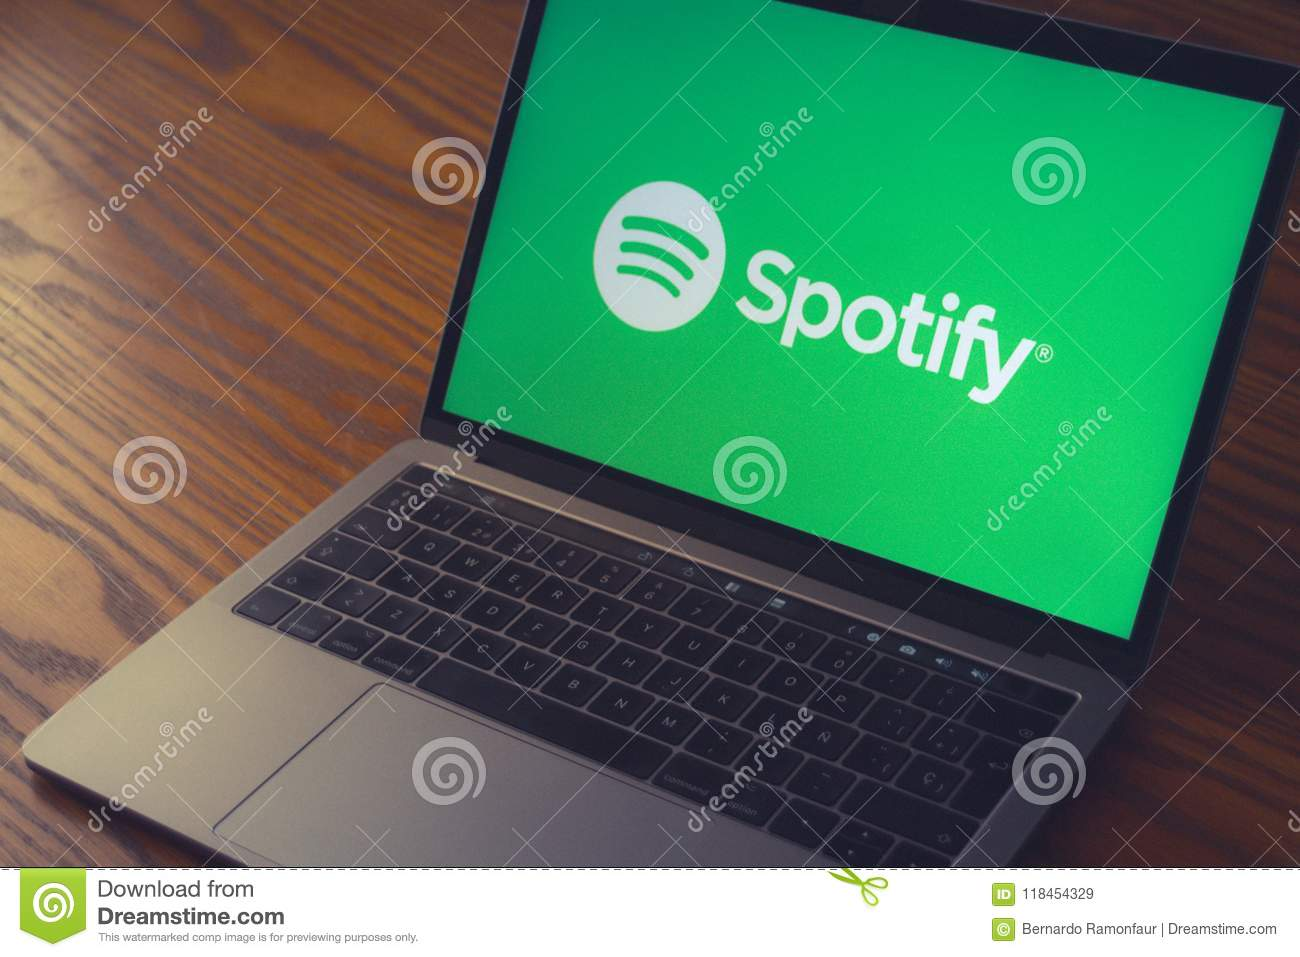 Spotify Logo On Computer Screen Editorial Stock Image